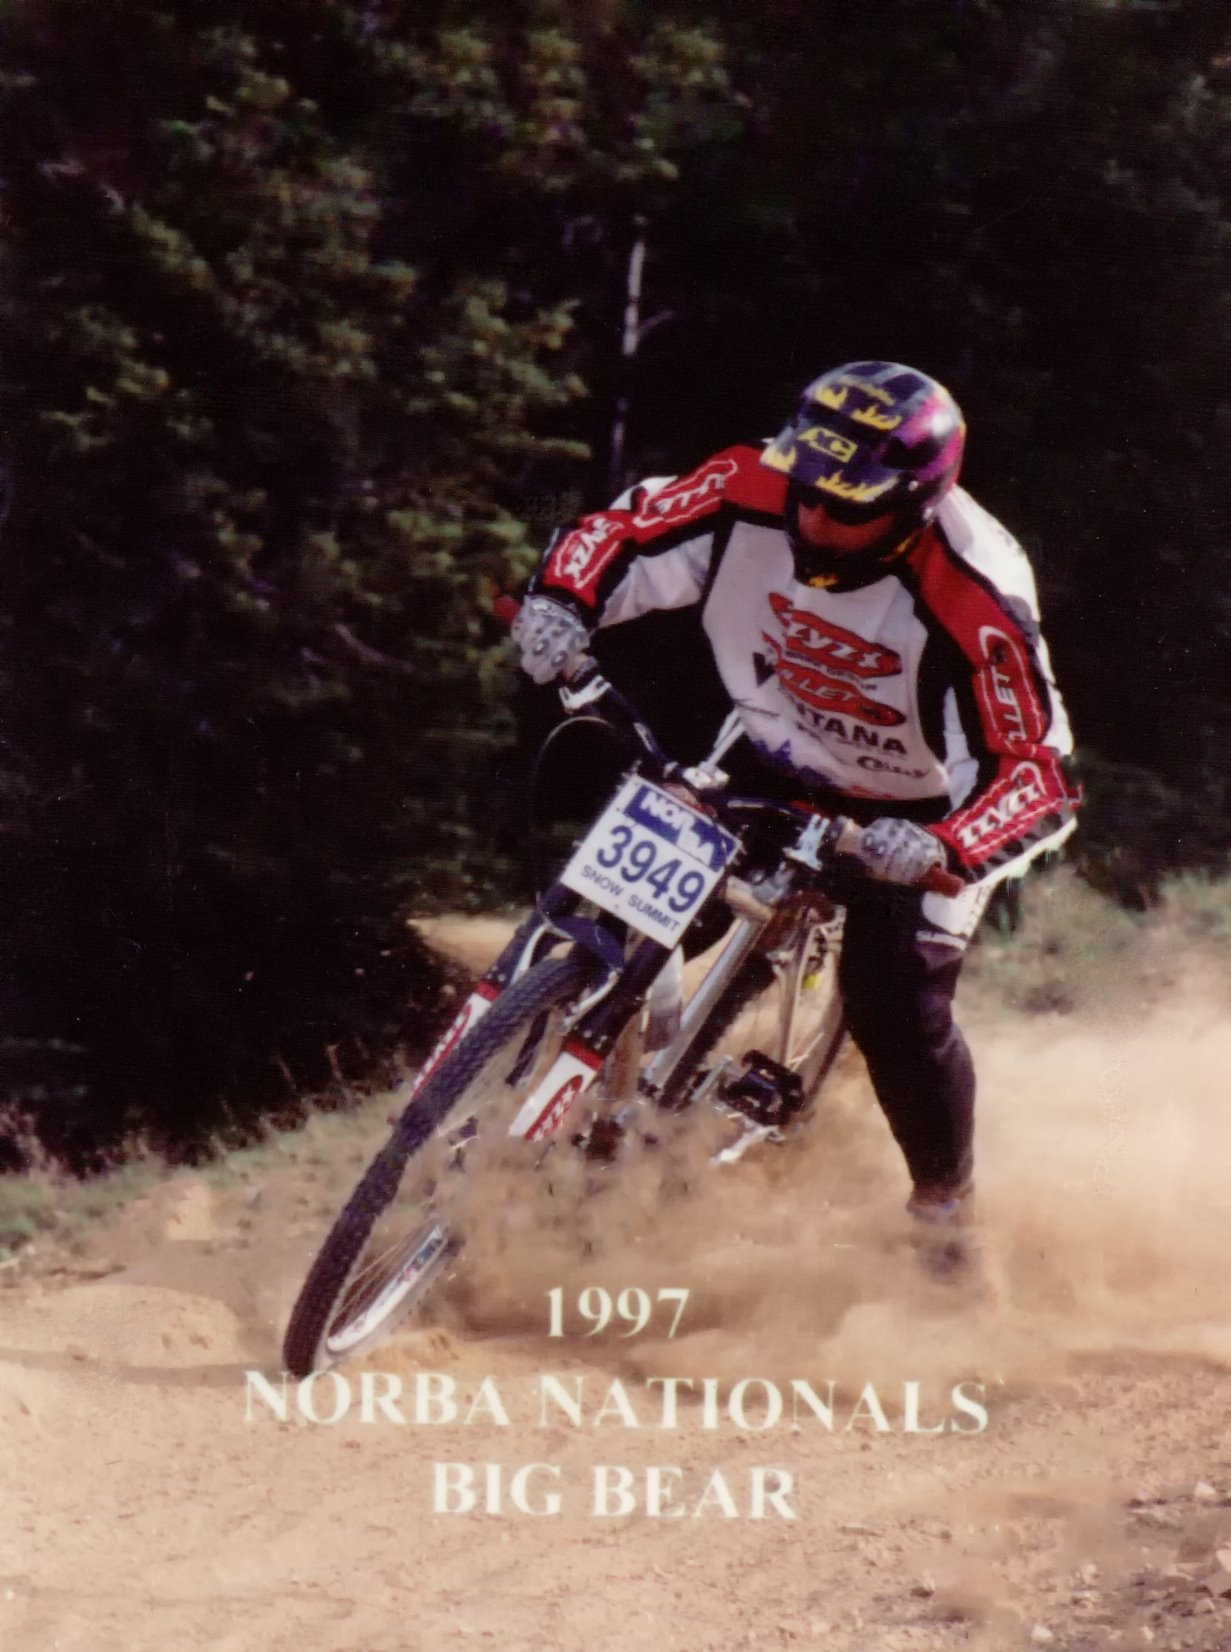 1997 NORBA Nationals Big Bear Lake, CA I took 3rd at this race. Now I'm 50 and still just as hard on the trails as I was back then... but a wee bit slower! Photo: Chris Sgaraglino